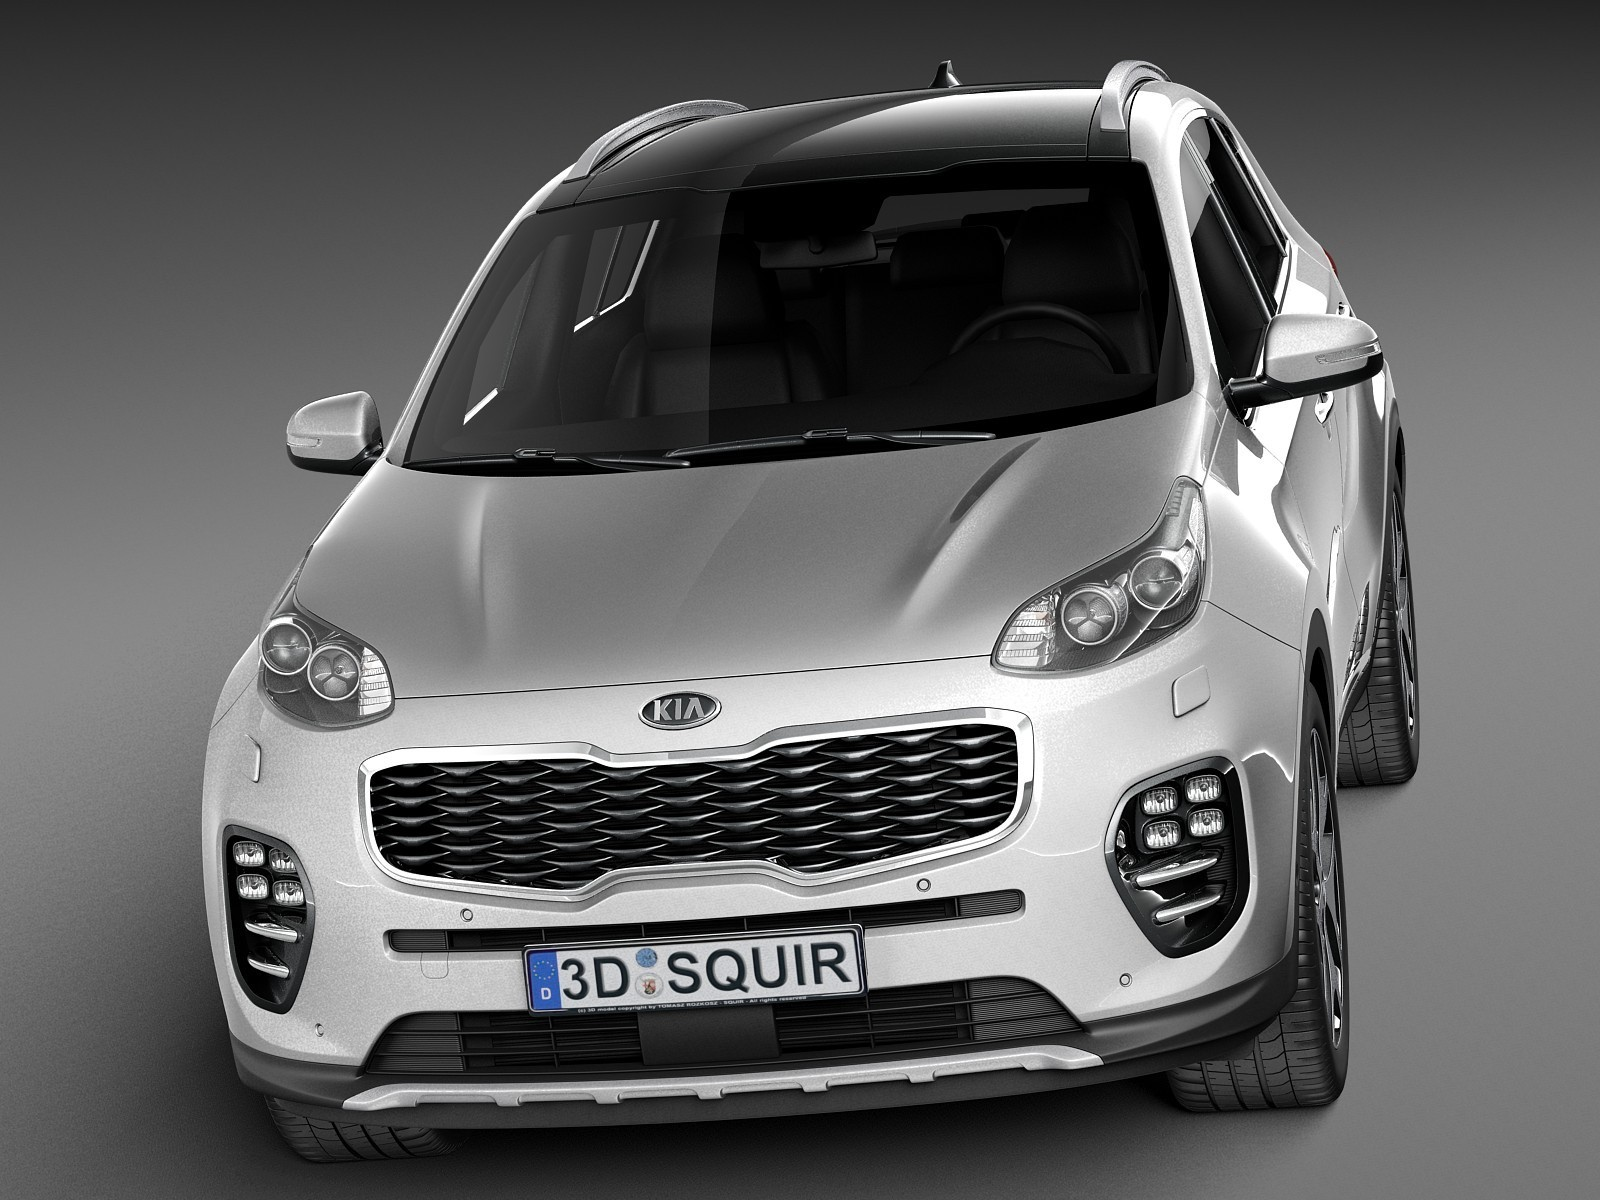 2016-kia-sportage-photos-leaked-via-3d-model-probably-no-but-the-rendings-are-accurate_2